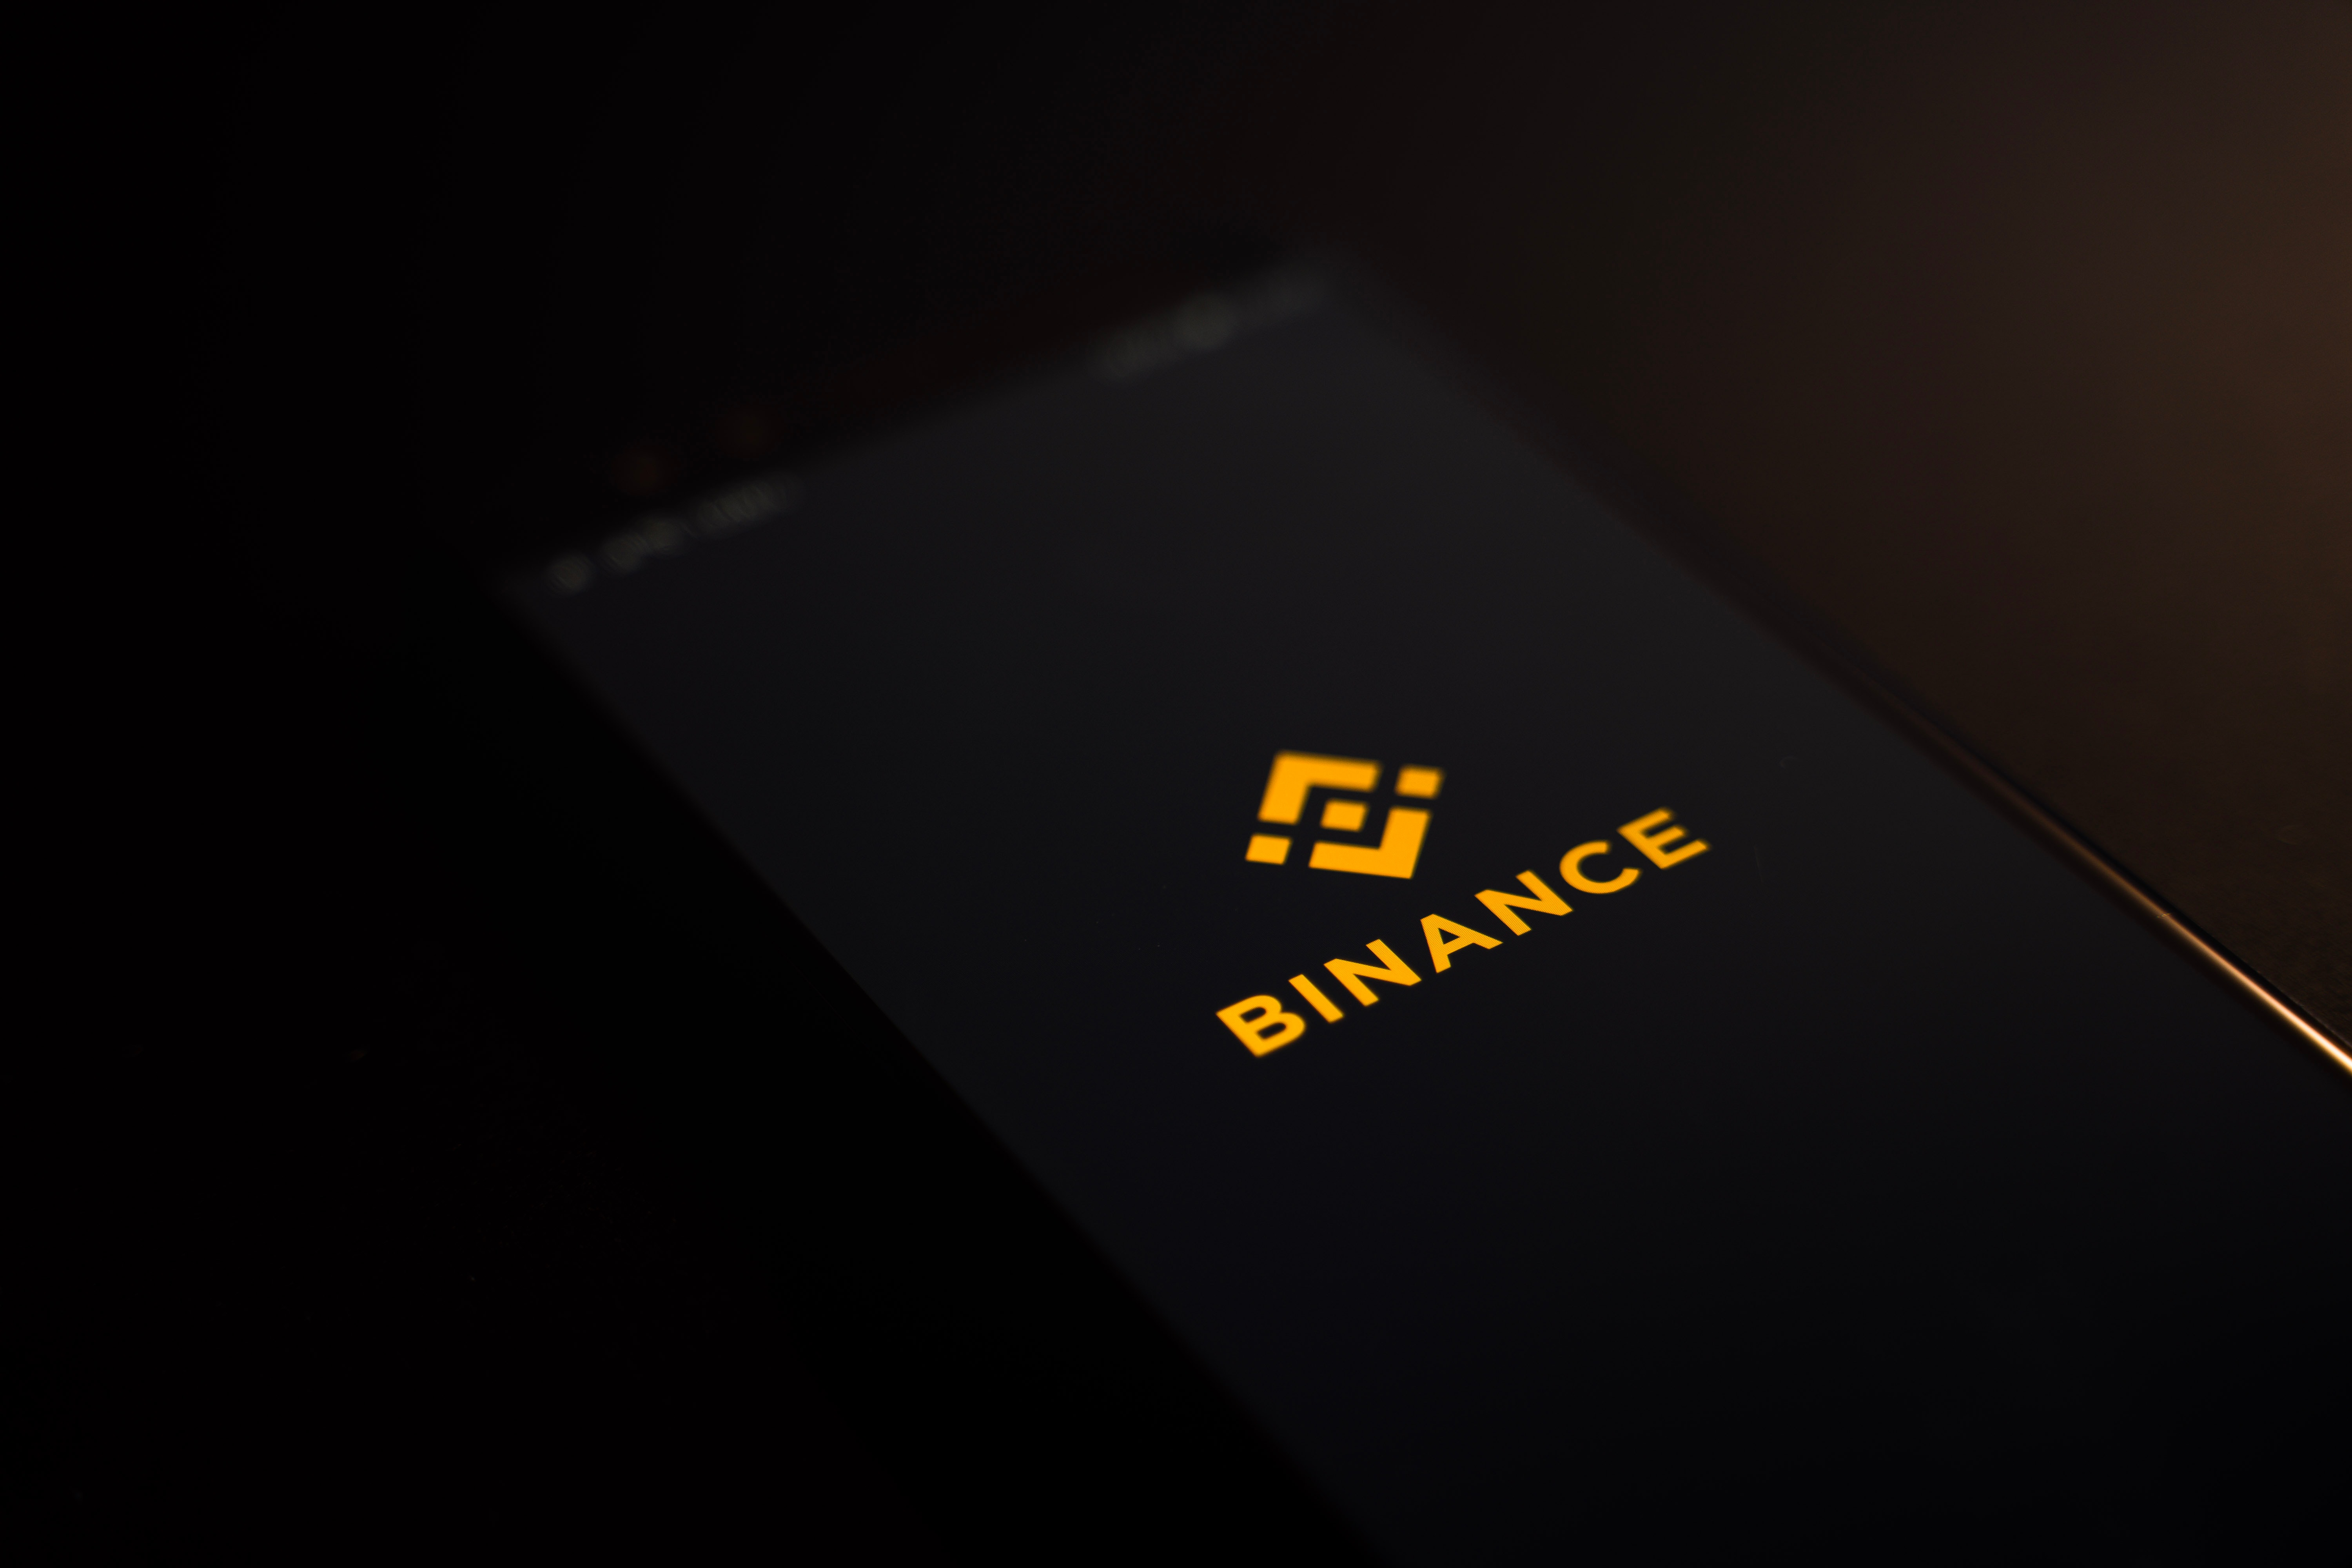 Crypto Exchange Binance Under Investigation by Department of Justice and IRS